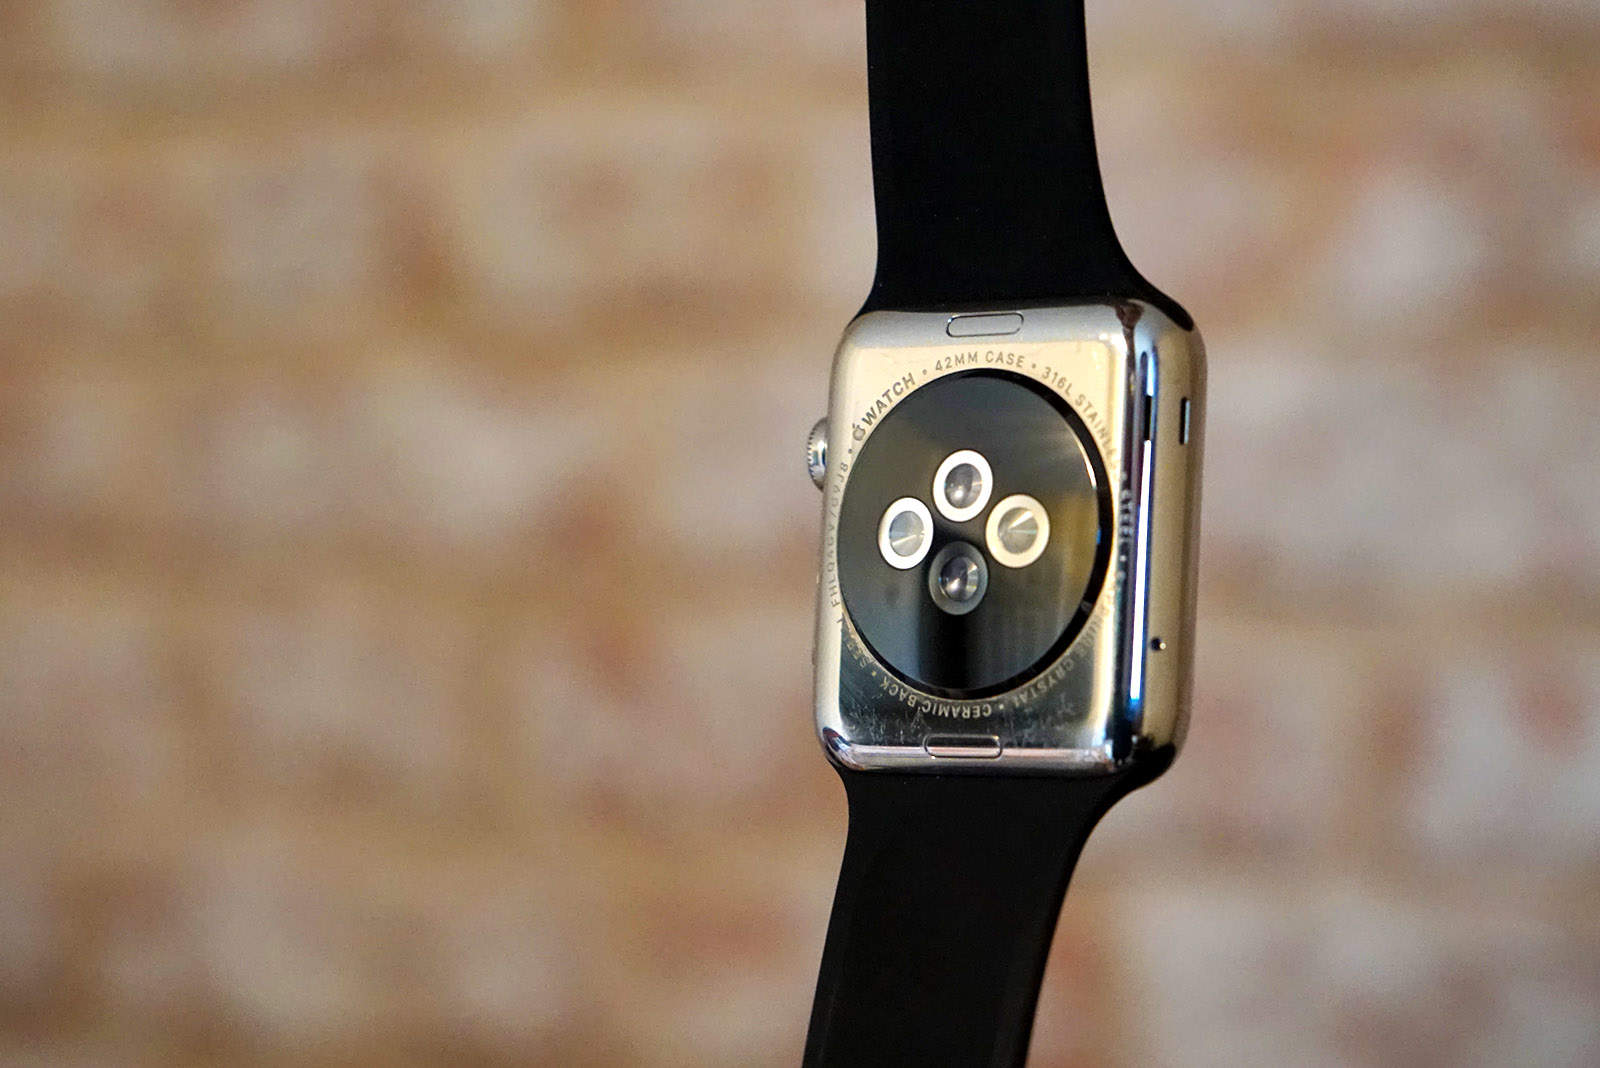 Update your fancy wrist computer to the latest watchOS.